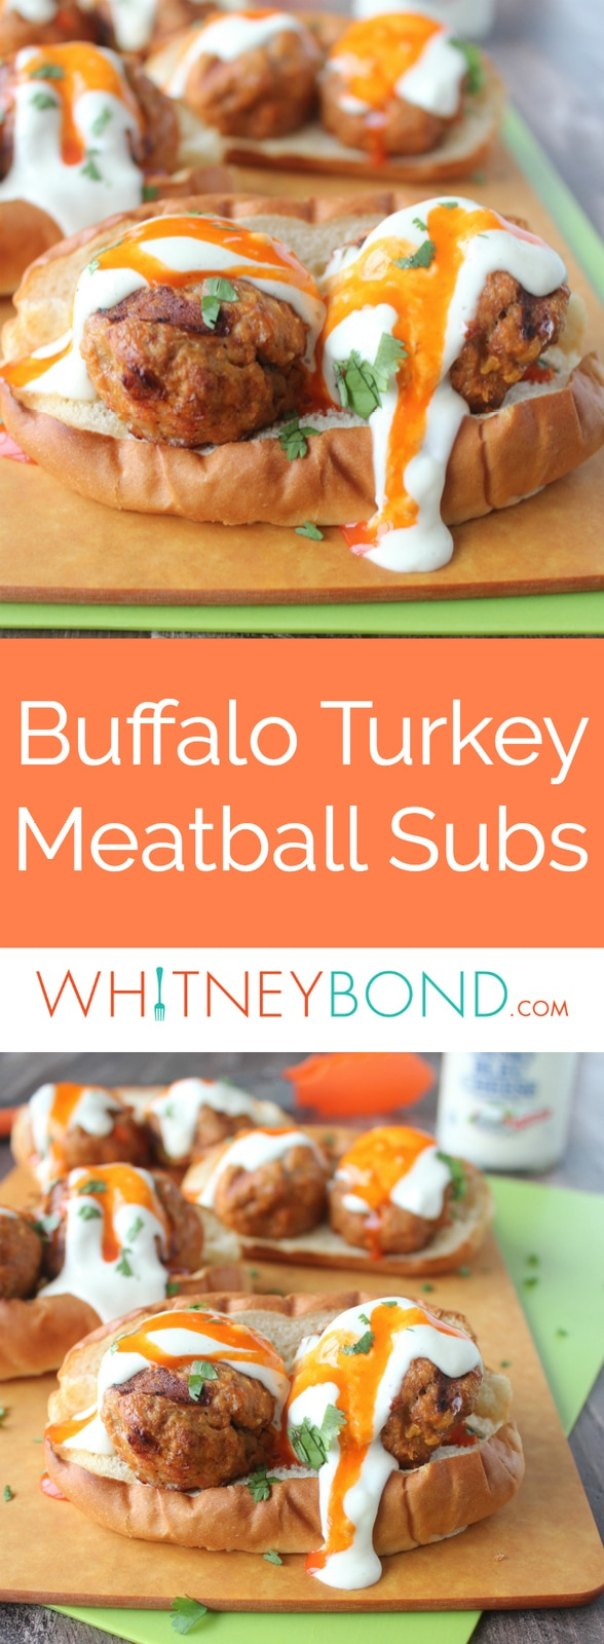 Turkey Meatballs Sub Sandwich With Buffalo Sauce Whitneybond Com